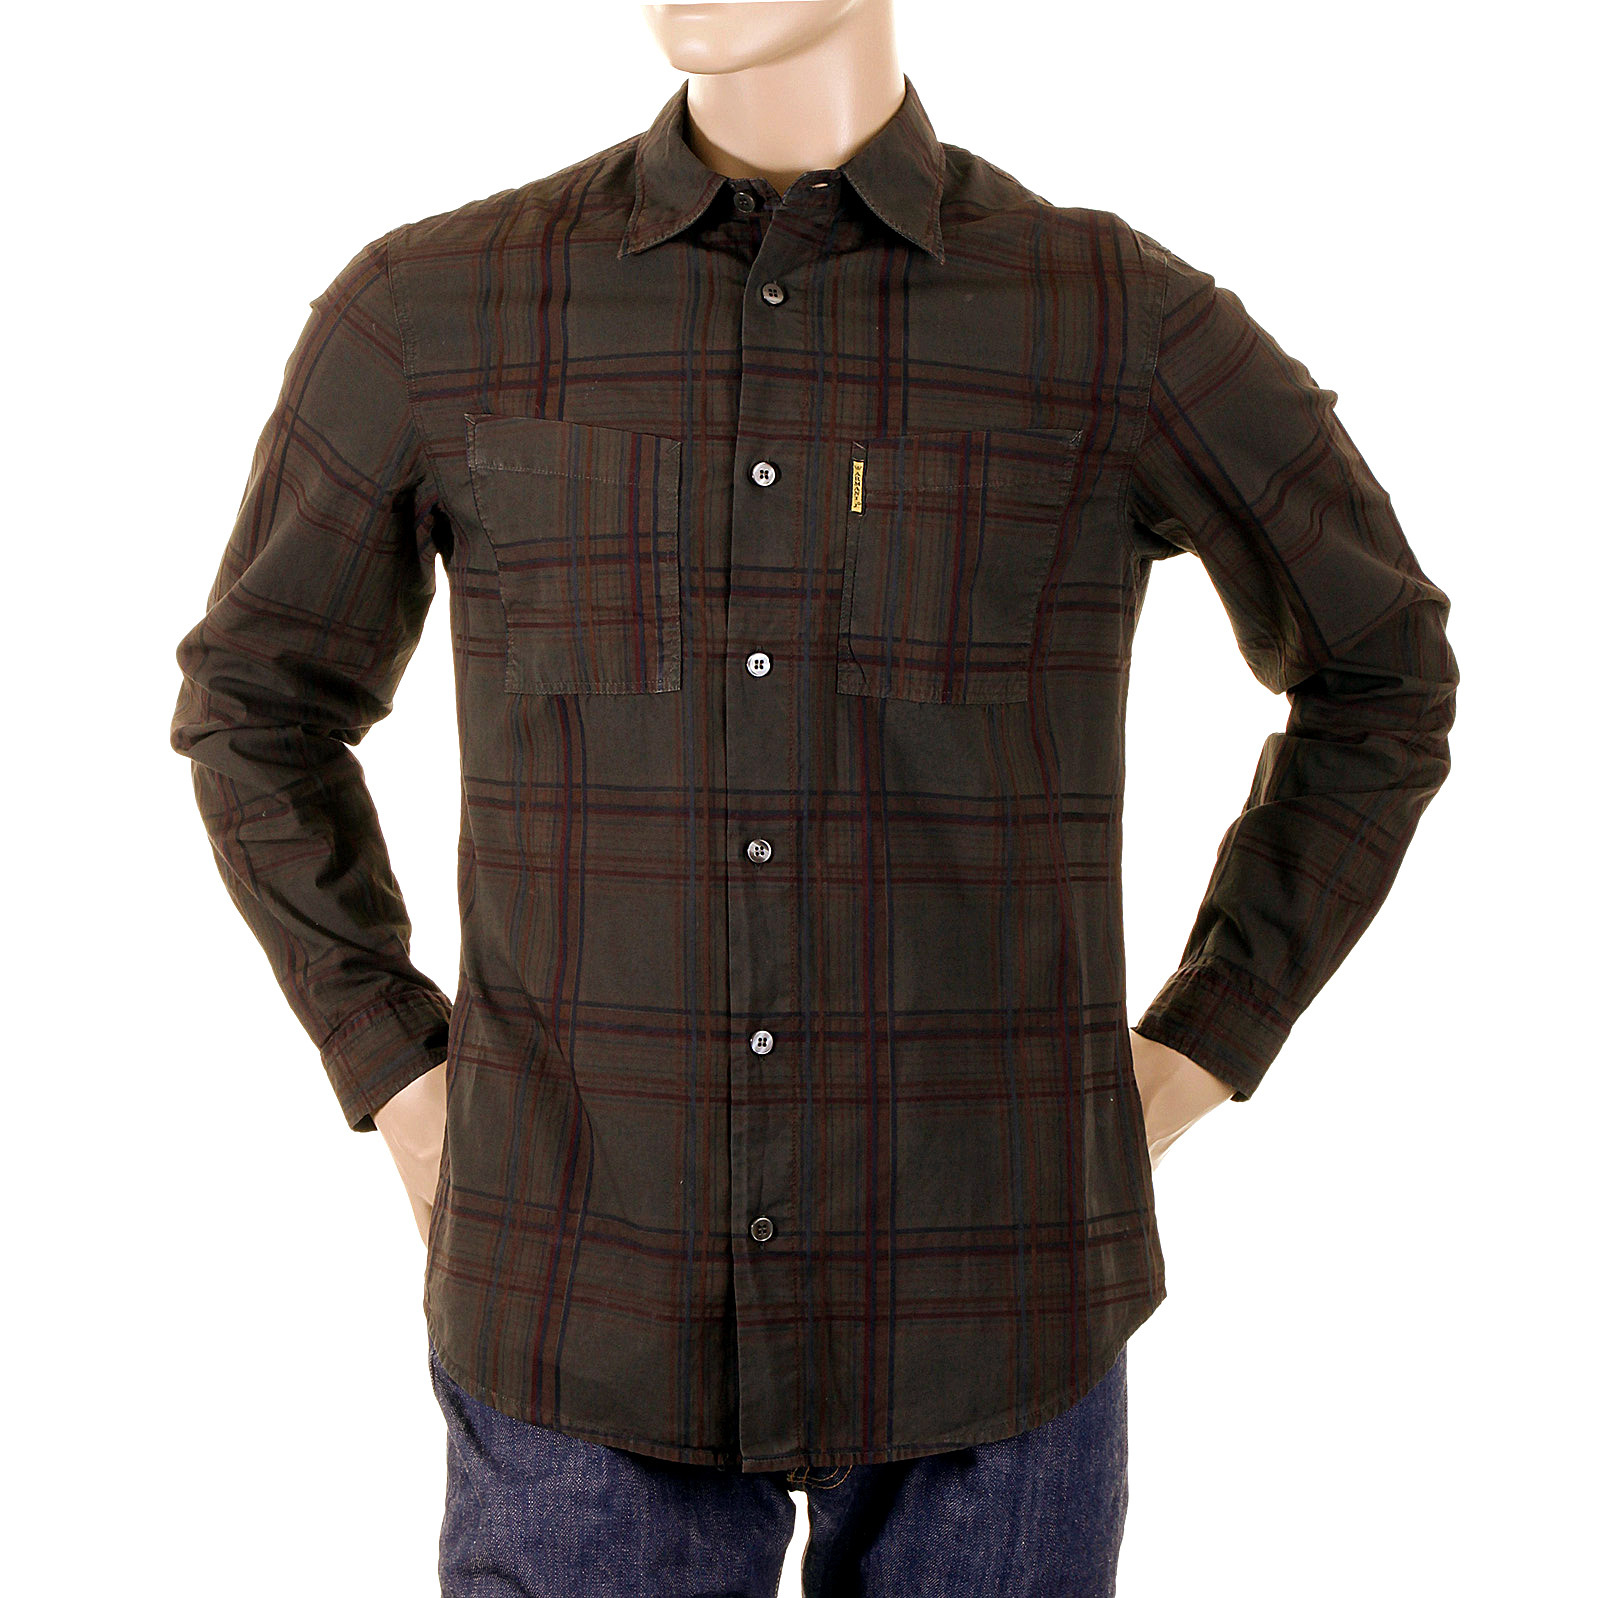 how to wear a checked shirt with jeans